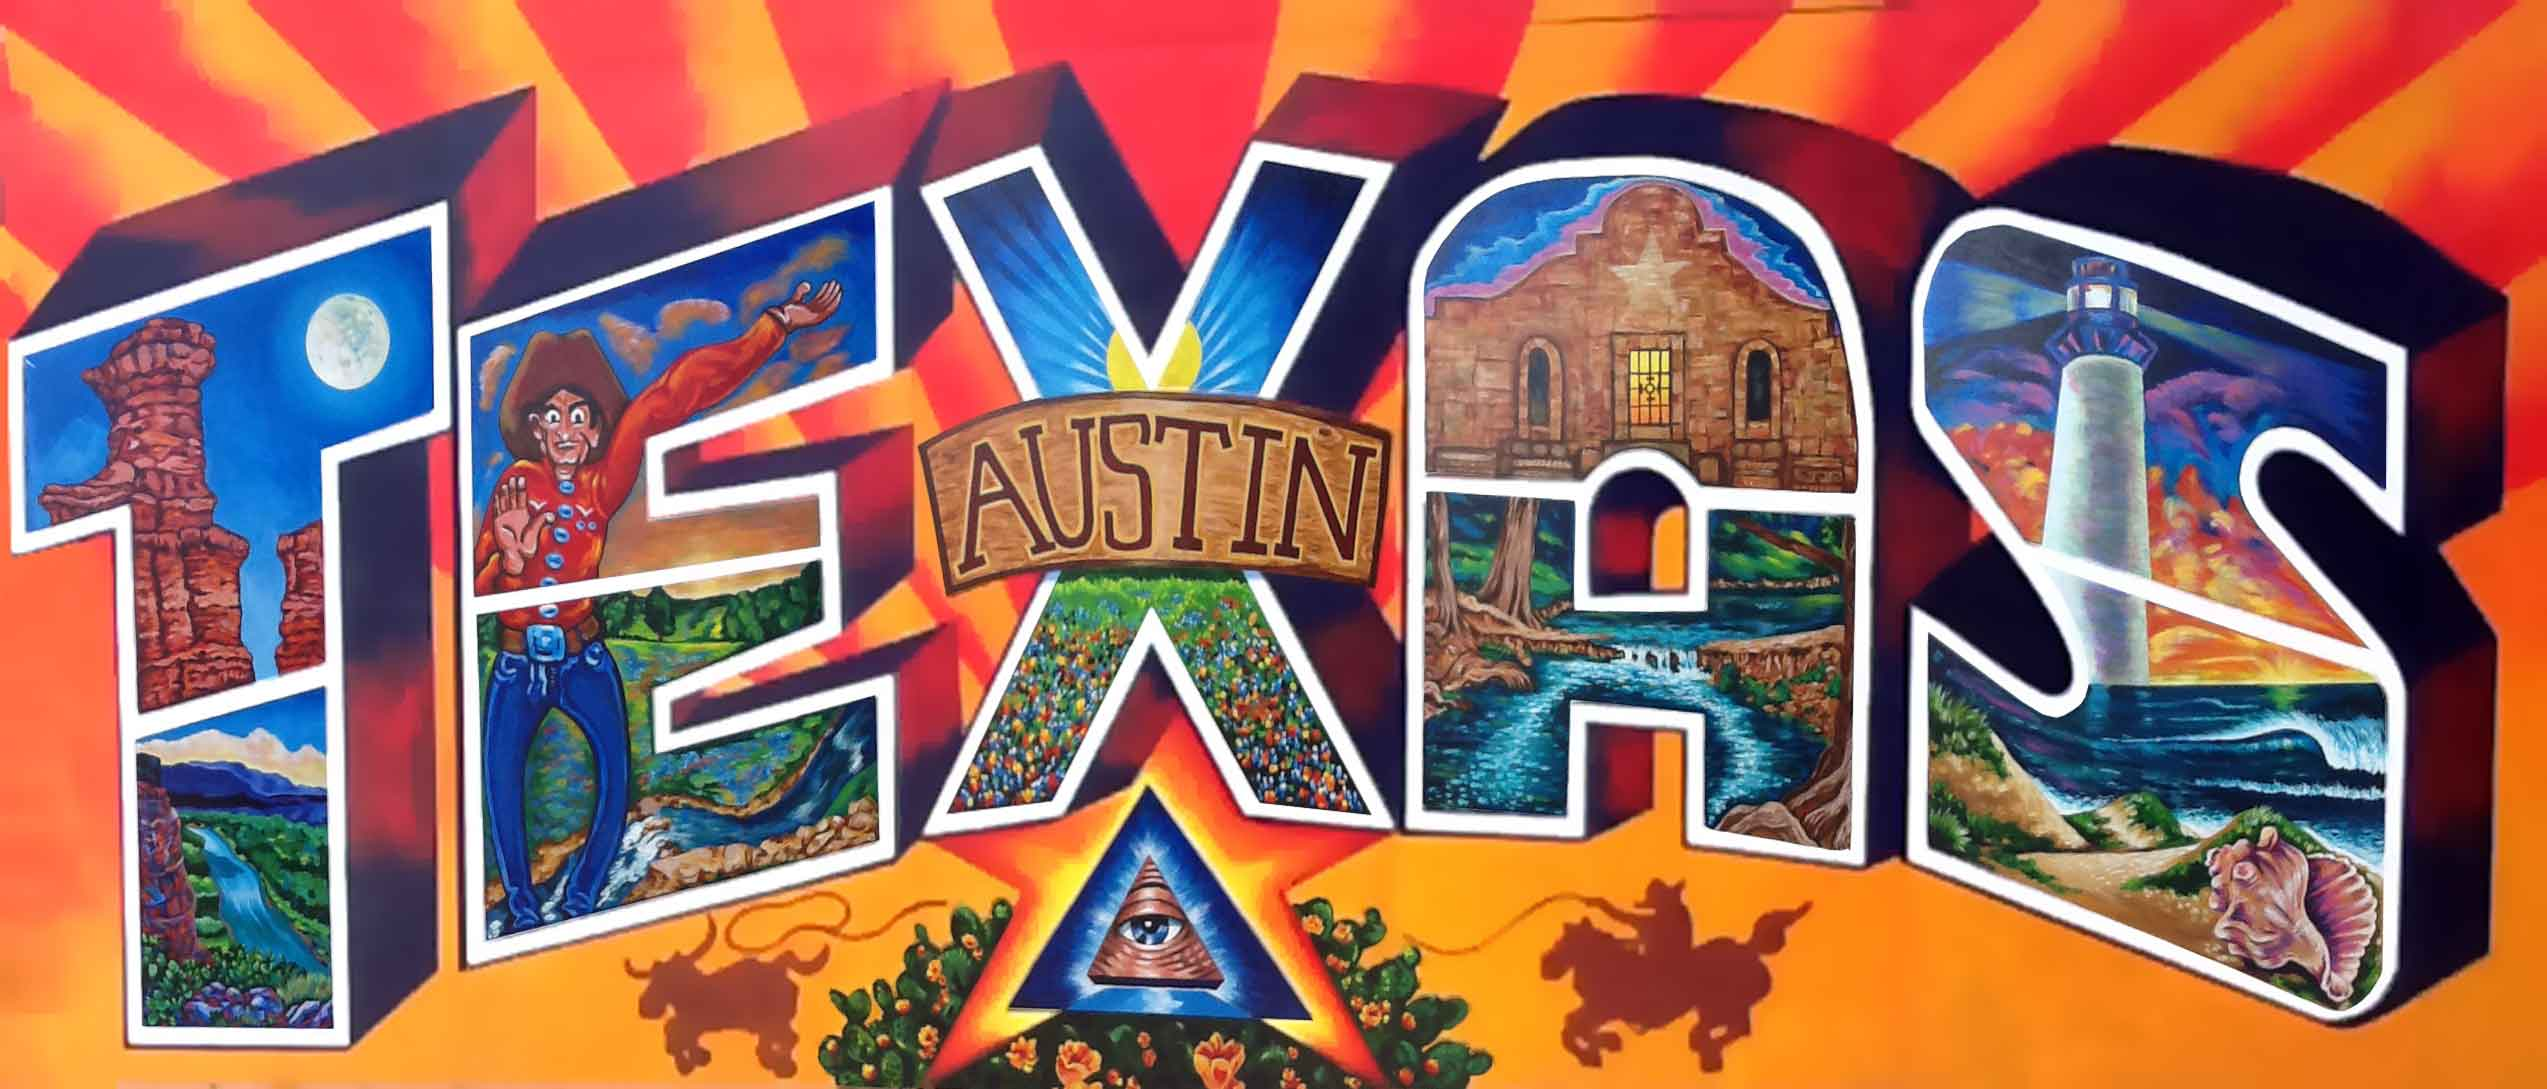 Austin Texas - Here we come